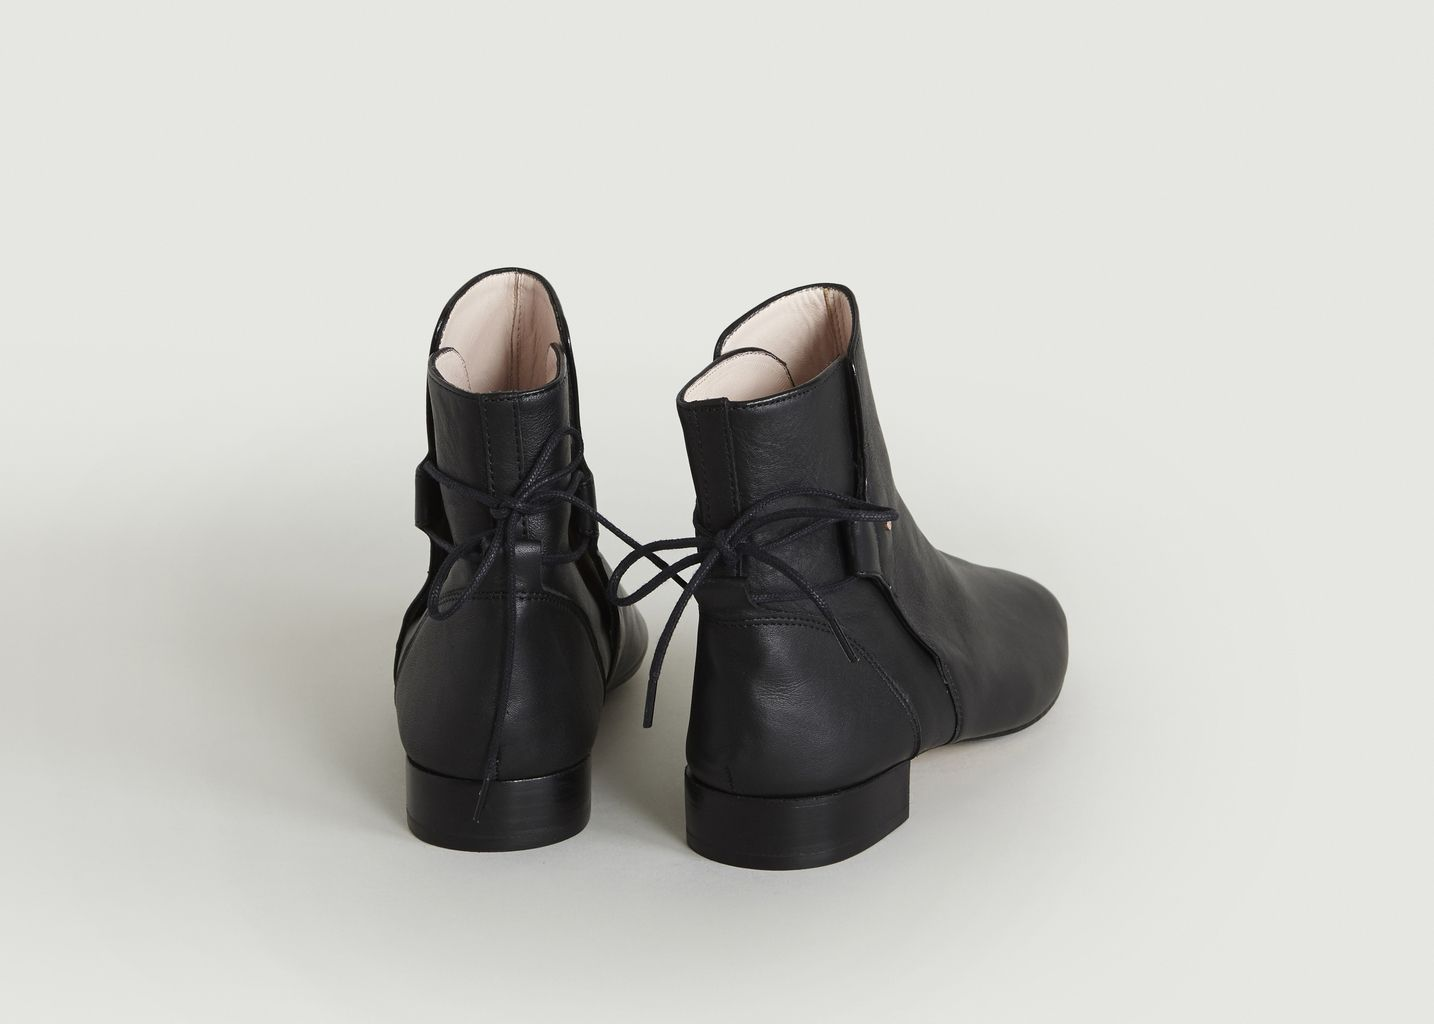 Gontrand Boots - Repetto